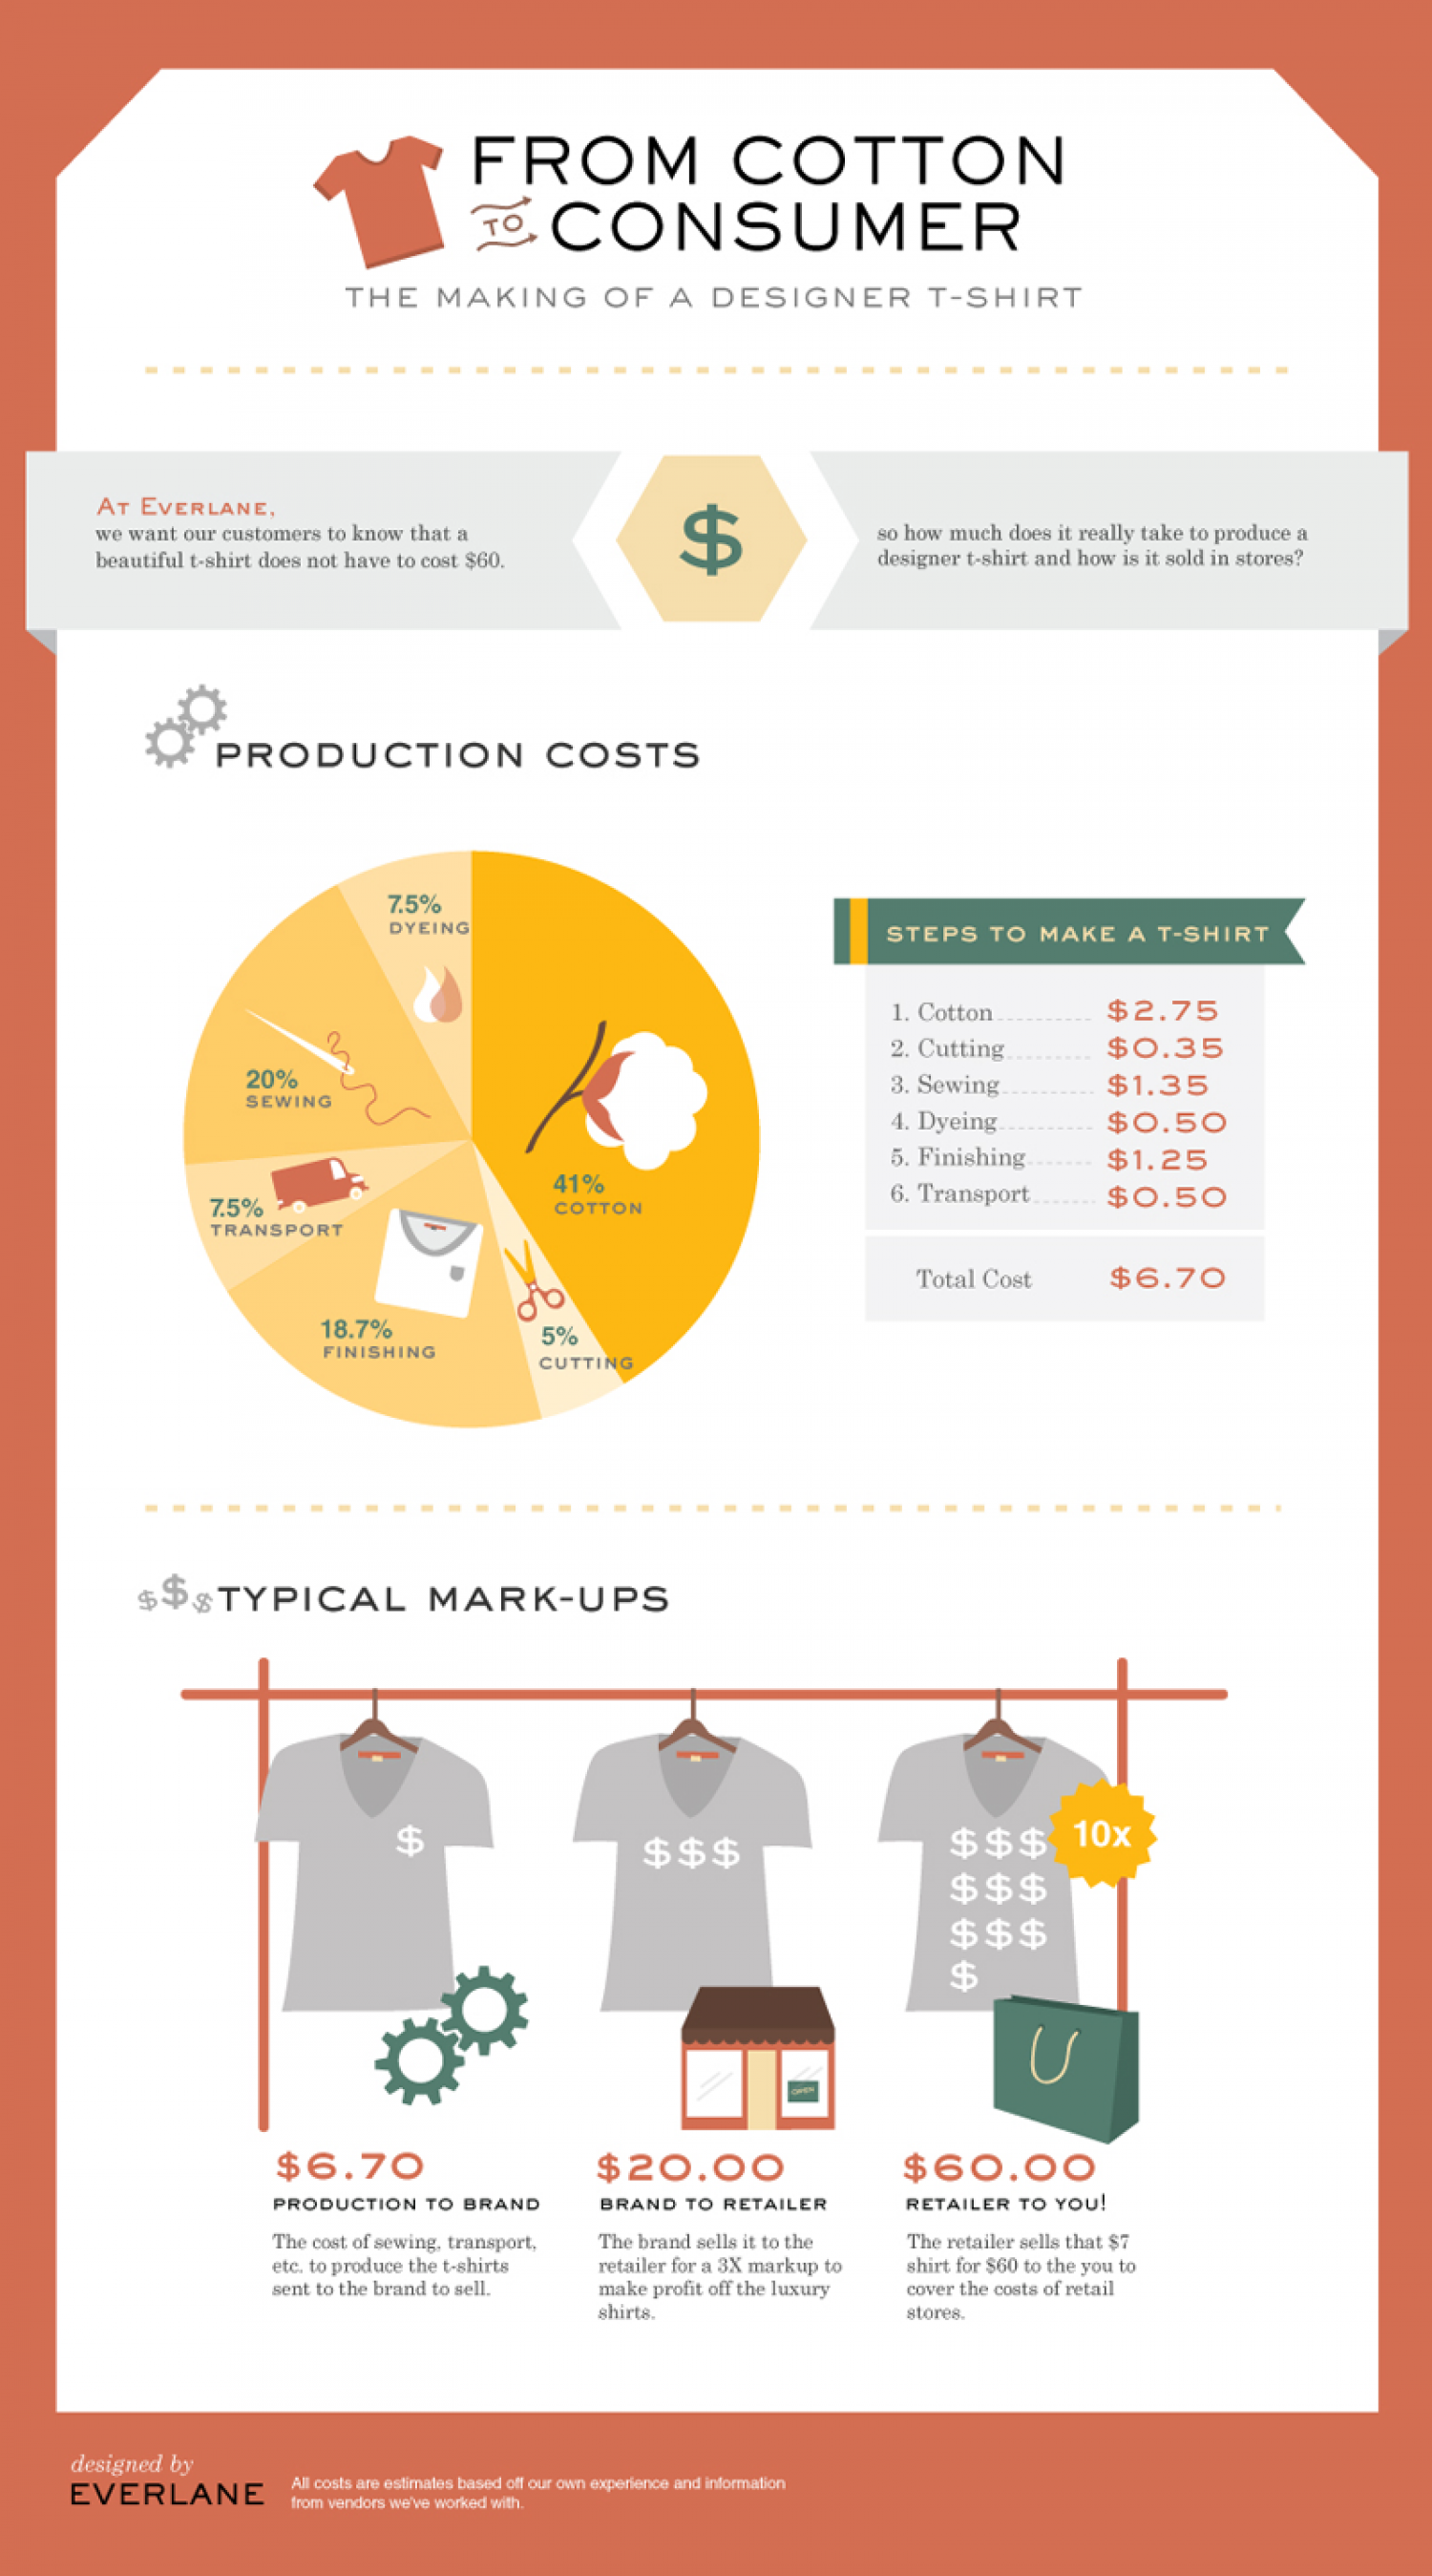 From Cotton to Consumer Infographic